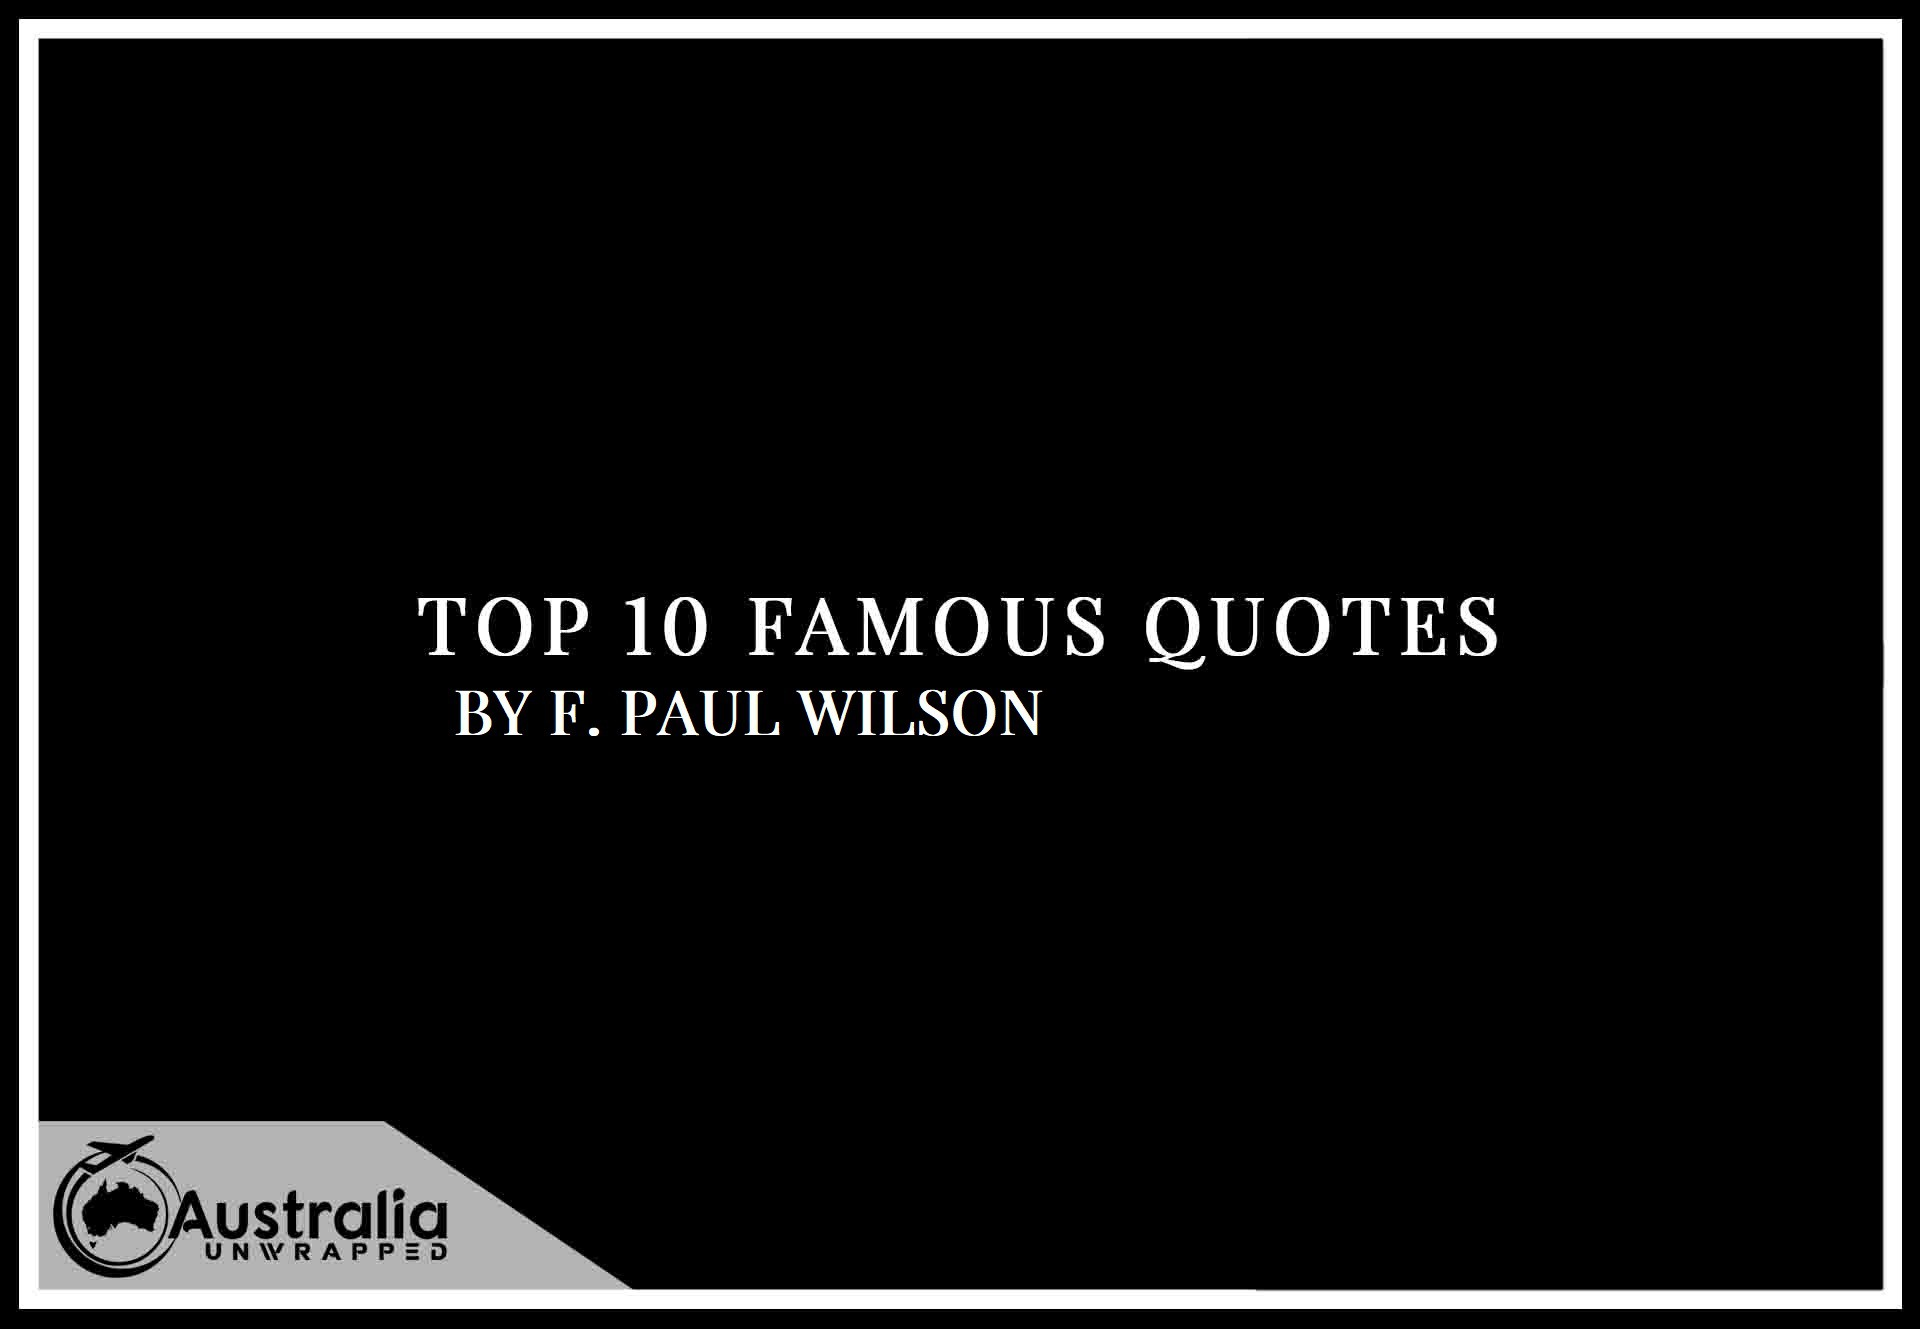 Top 10 Famous Quotes by Author F. Paul Wilson